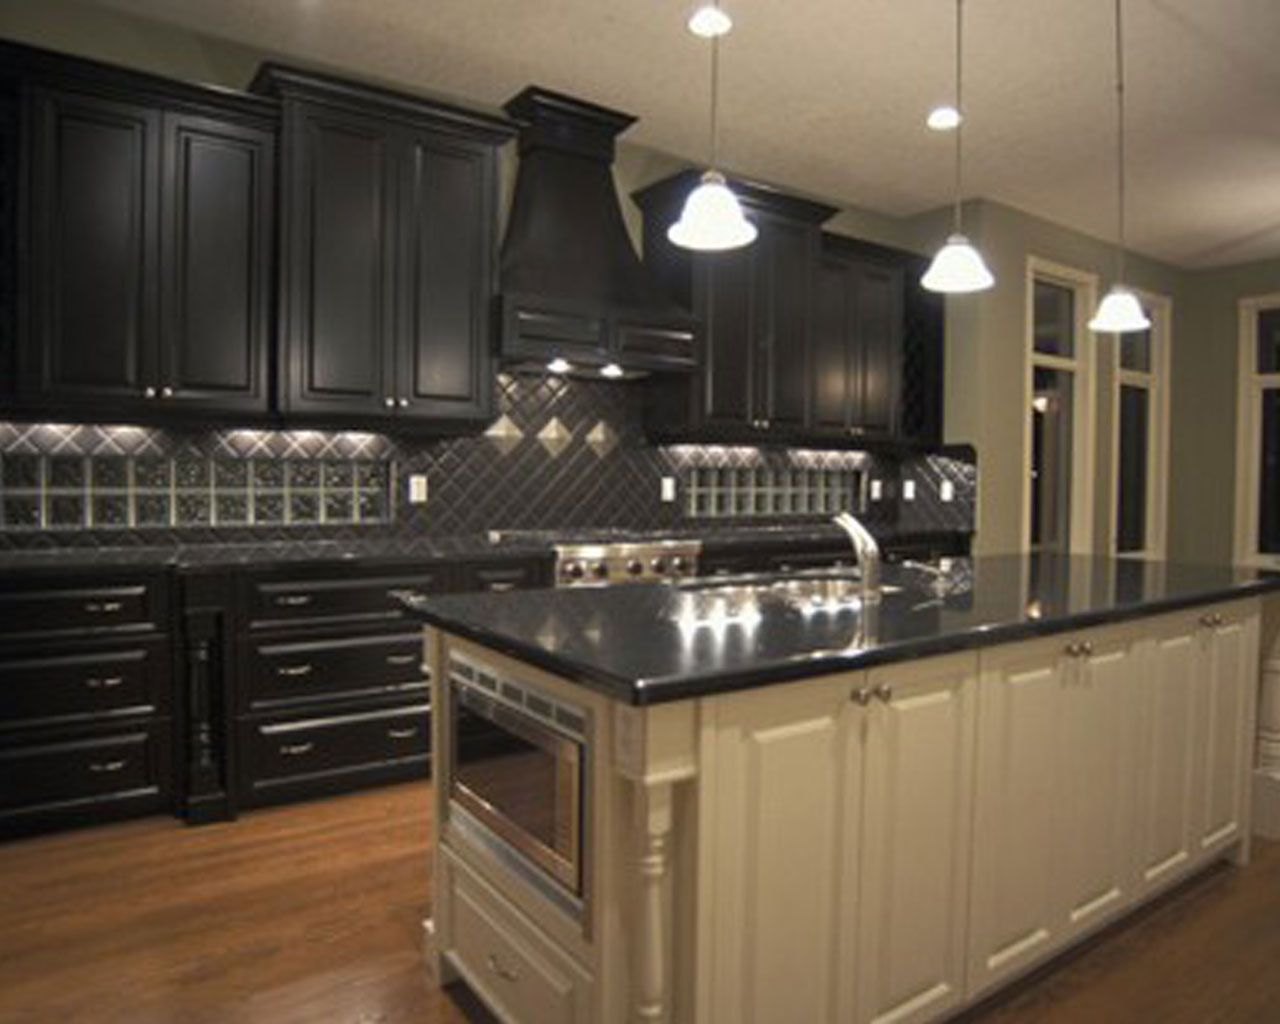 Finest design black kitchen cabinets wallpapers new for Black and white kitchen cabinet designs